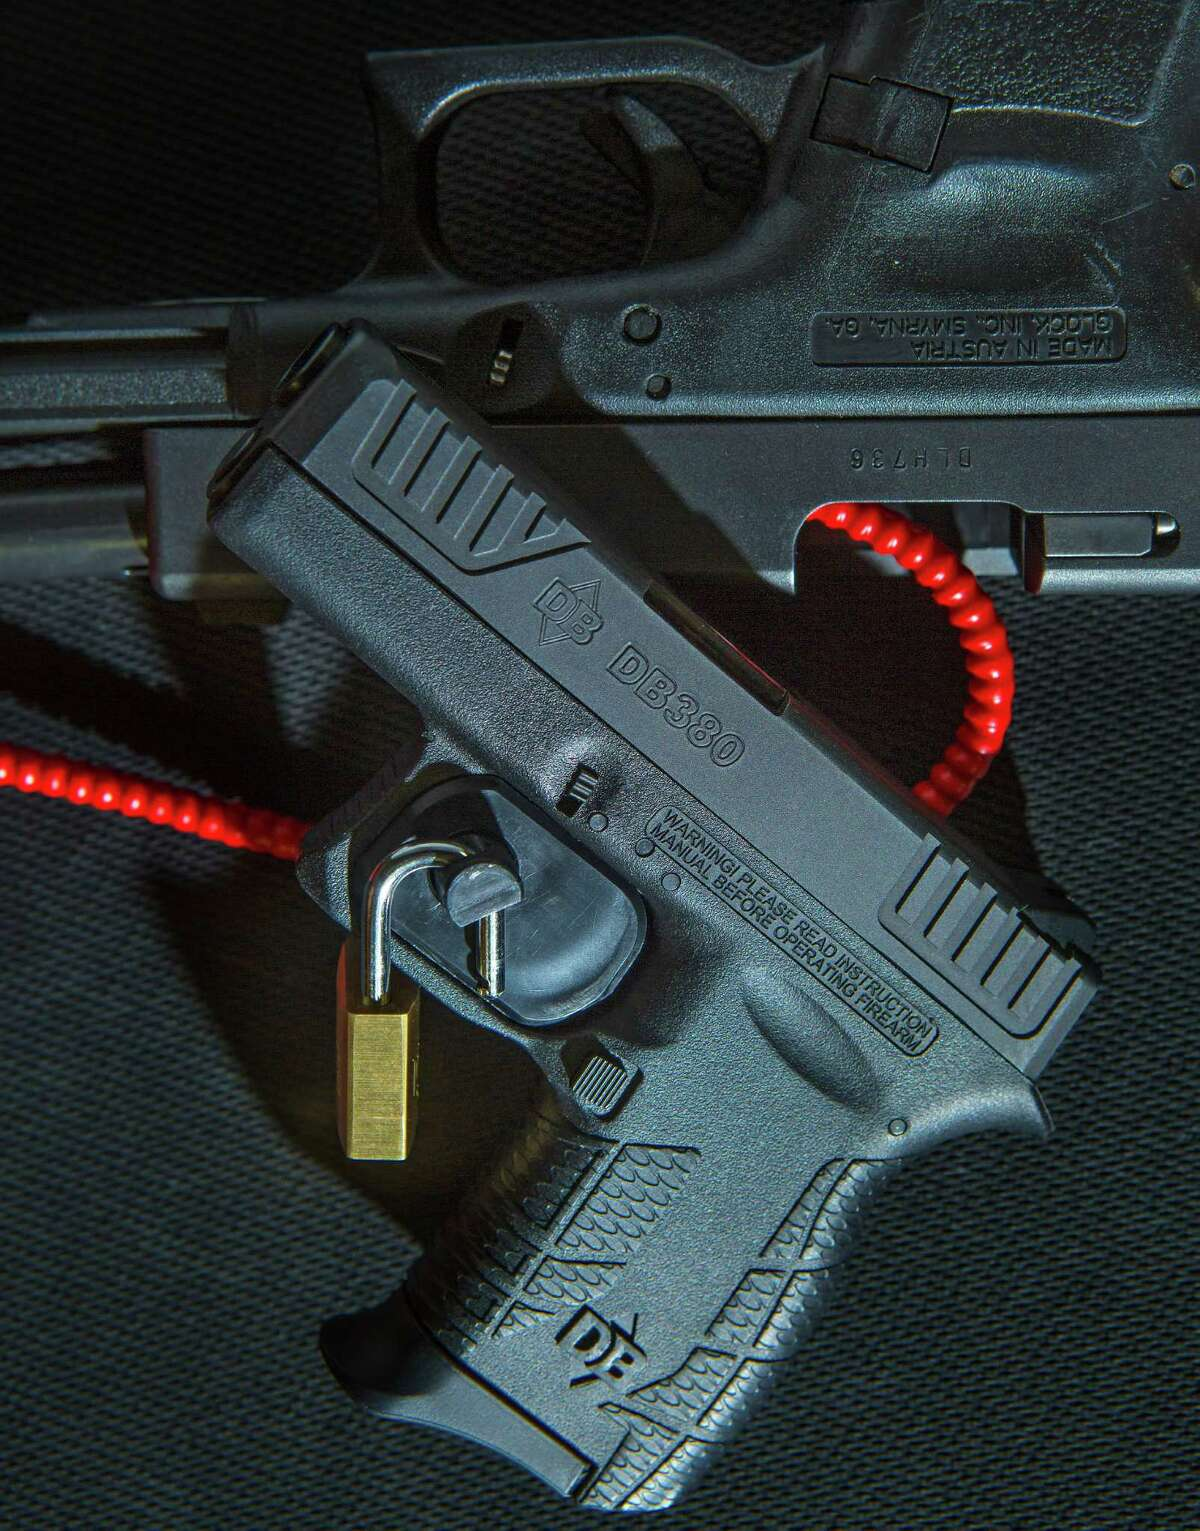 Gun ownership in Texas is on the rise, and first-time owners may not have had experience in the safe storage of guns. While owning a gun is a personal decision, storing guns responsibly is a public safety issue. All new hand guns sold in the U.S. are required to come with a gun lock. (Mark Mulligan / Houston Chronicle )